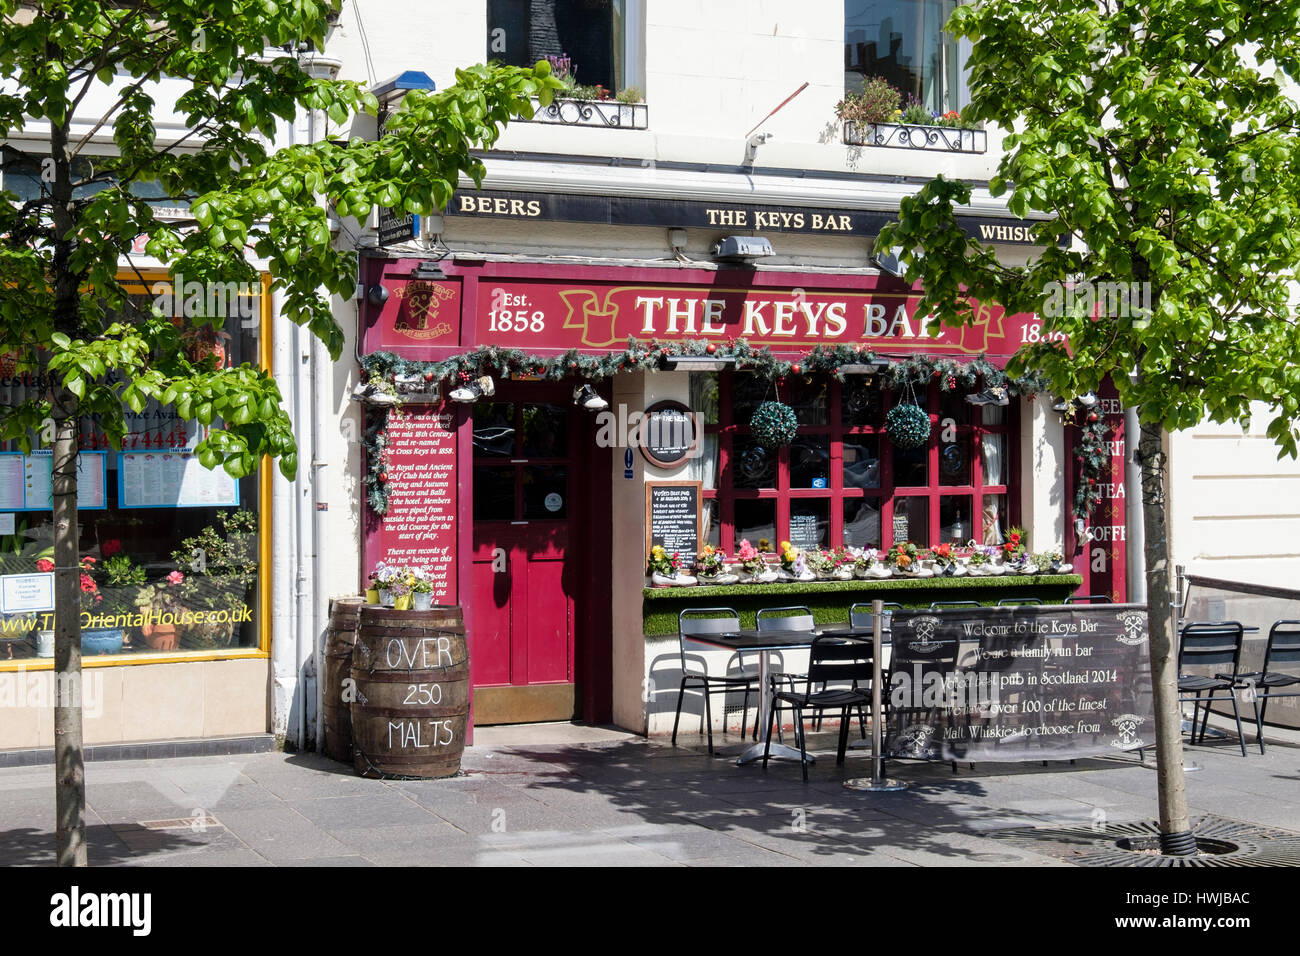 The Keys Bar Inn in town centre was voted best pub in Scotland. Market Street, Royal Burgh St Andrews, Fife, Scotland, - Stock Image